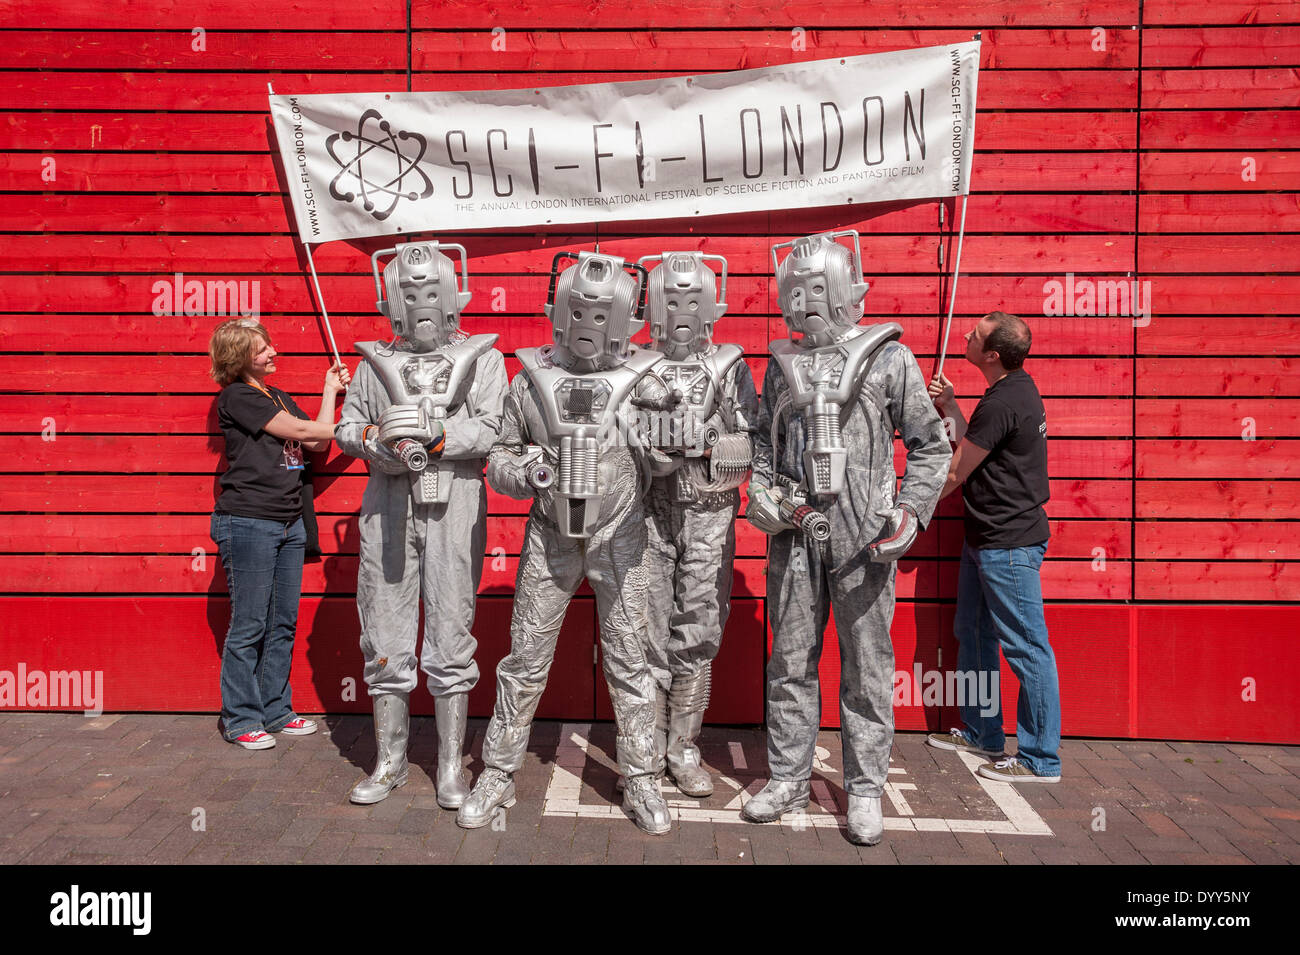 London, 27 April 2014 - people dressed as their favourite sci-fi characters take part in the Sci-Fi London 2014 costume parade starting at Somerset House and finishing at the BFI on the South Bank. People dressed as Cybermen under a Sci-Fi London banner.    Credit:  Stephen Chung/Alamy Live News - Stock Image